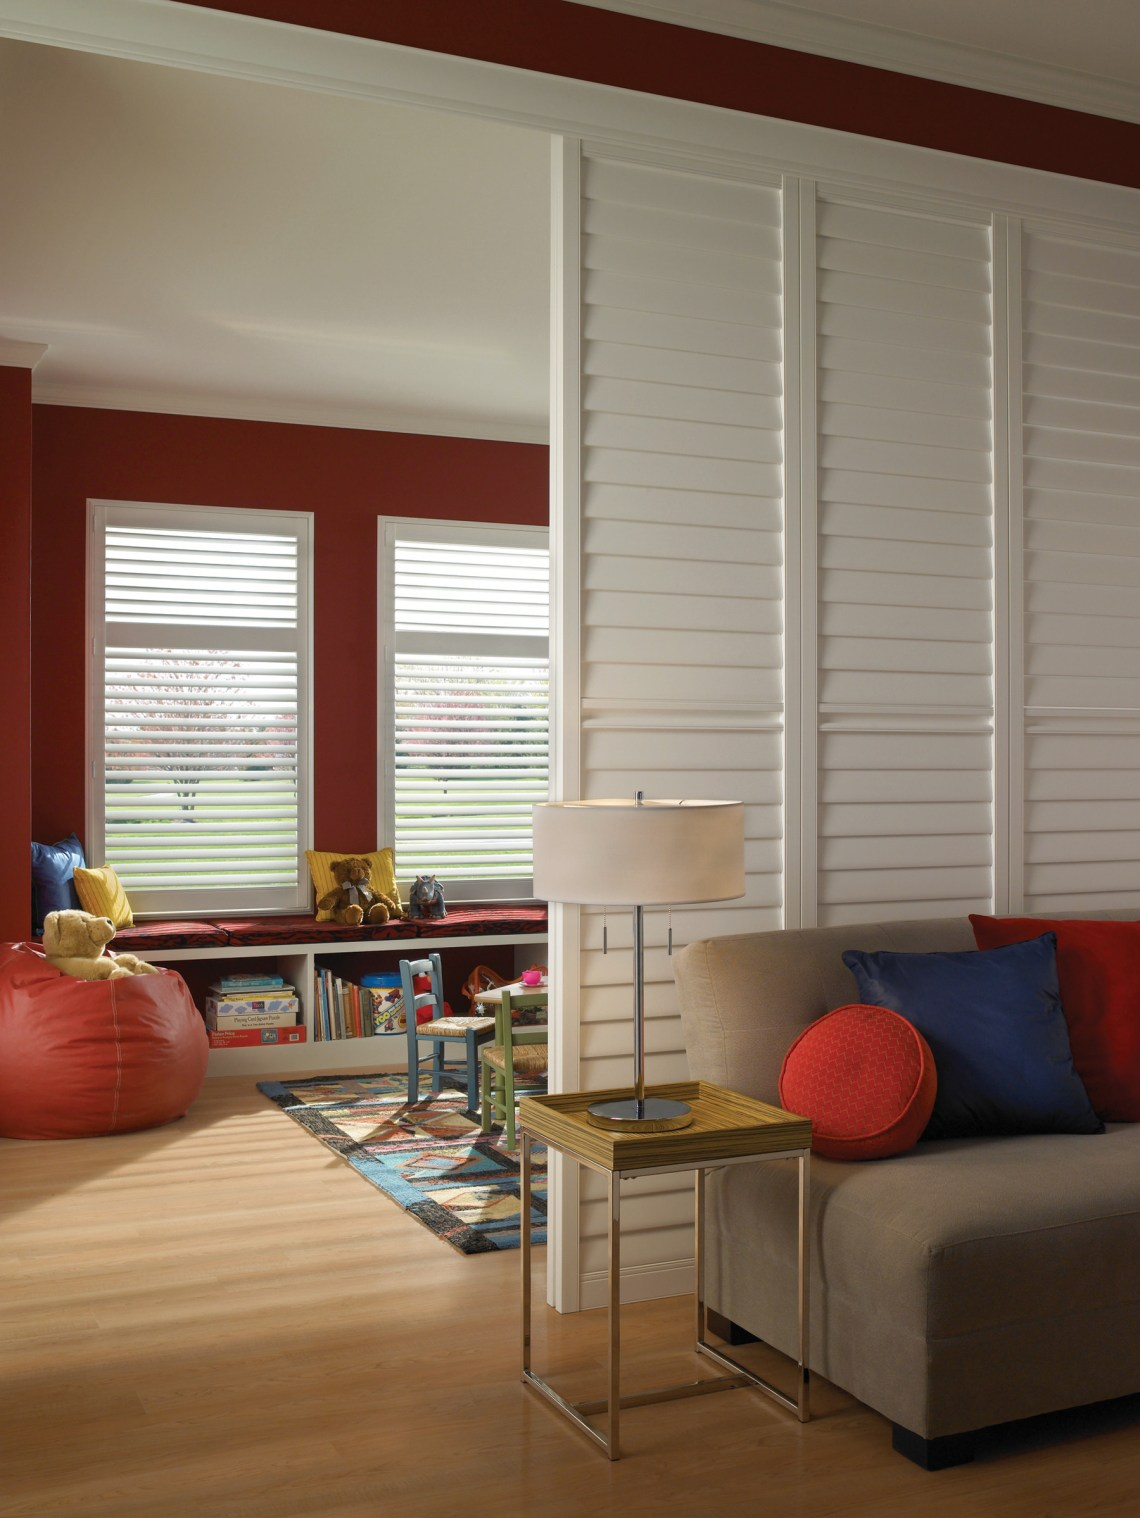 Playroom With Sliding Room Divider Contemporary Kids Atlanta By Eclipse Shutters Houzz